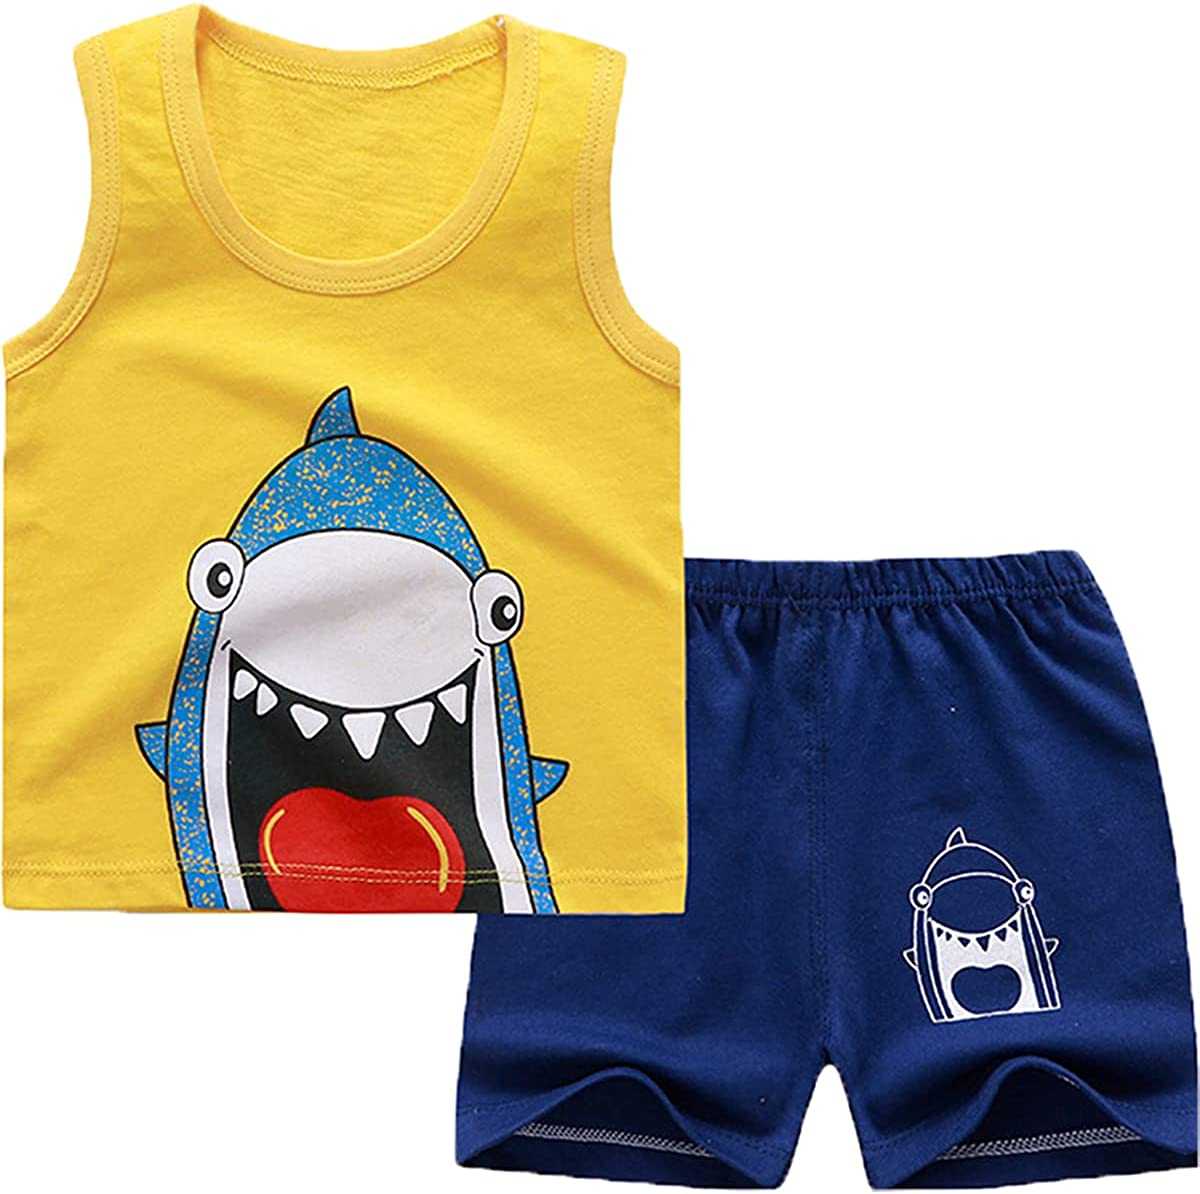 Toddler Baby Boys Clothes Shorts Sets Cotton Short Sleeve T-Shirt Tops Infant Summer Outfit Set 2Pcs Boys Clothing